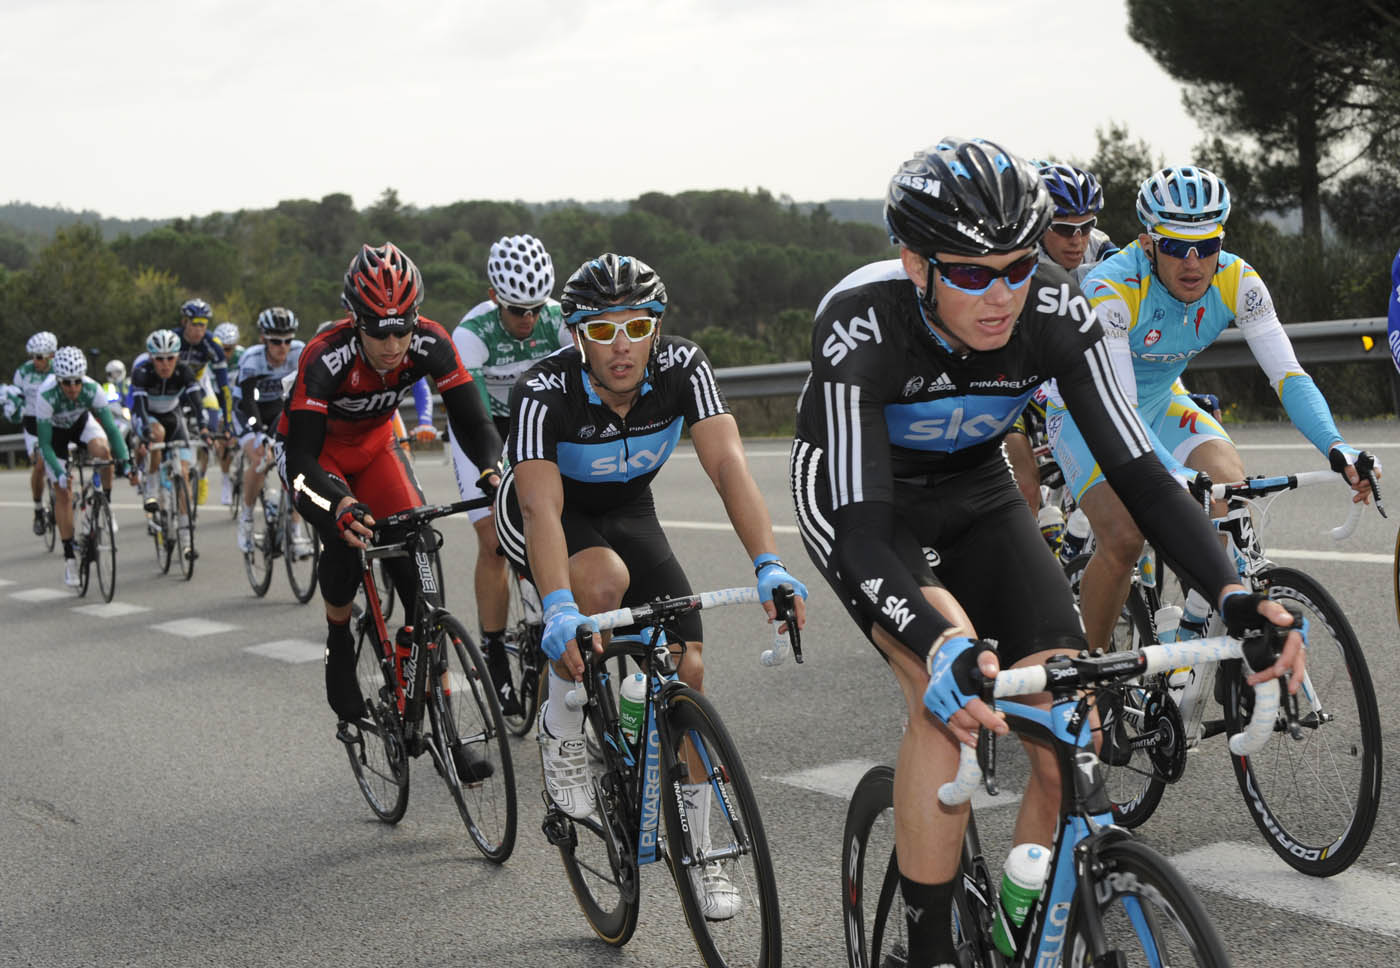 Chris Froome, Volta a Catalunya 2011 stage two